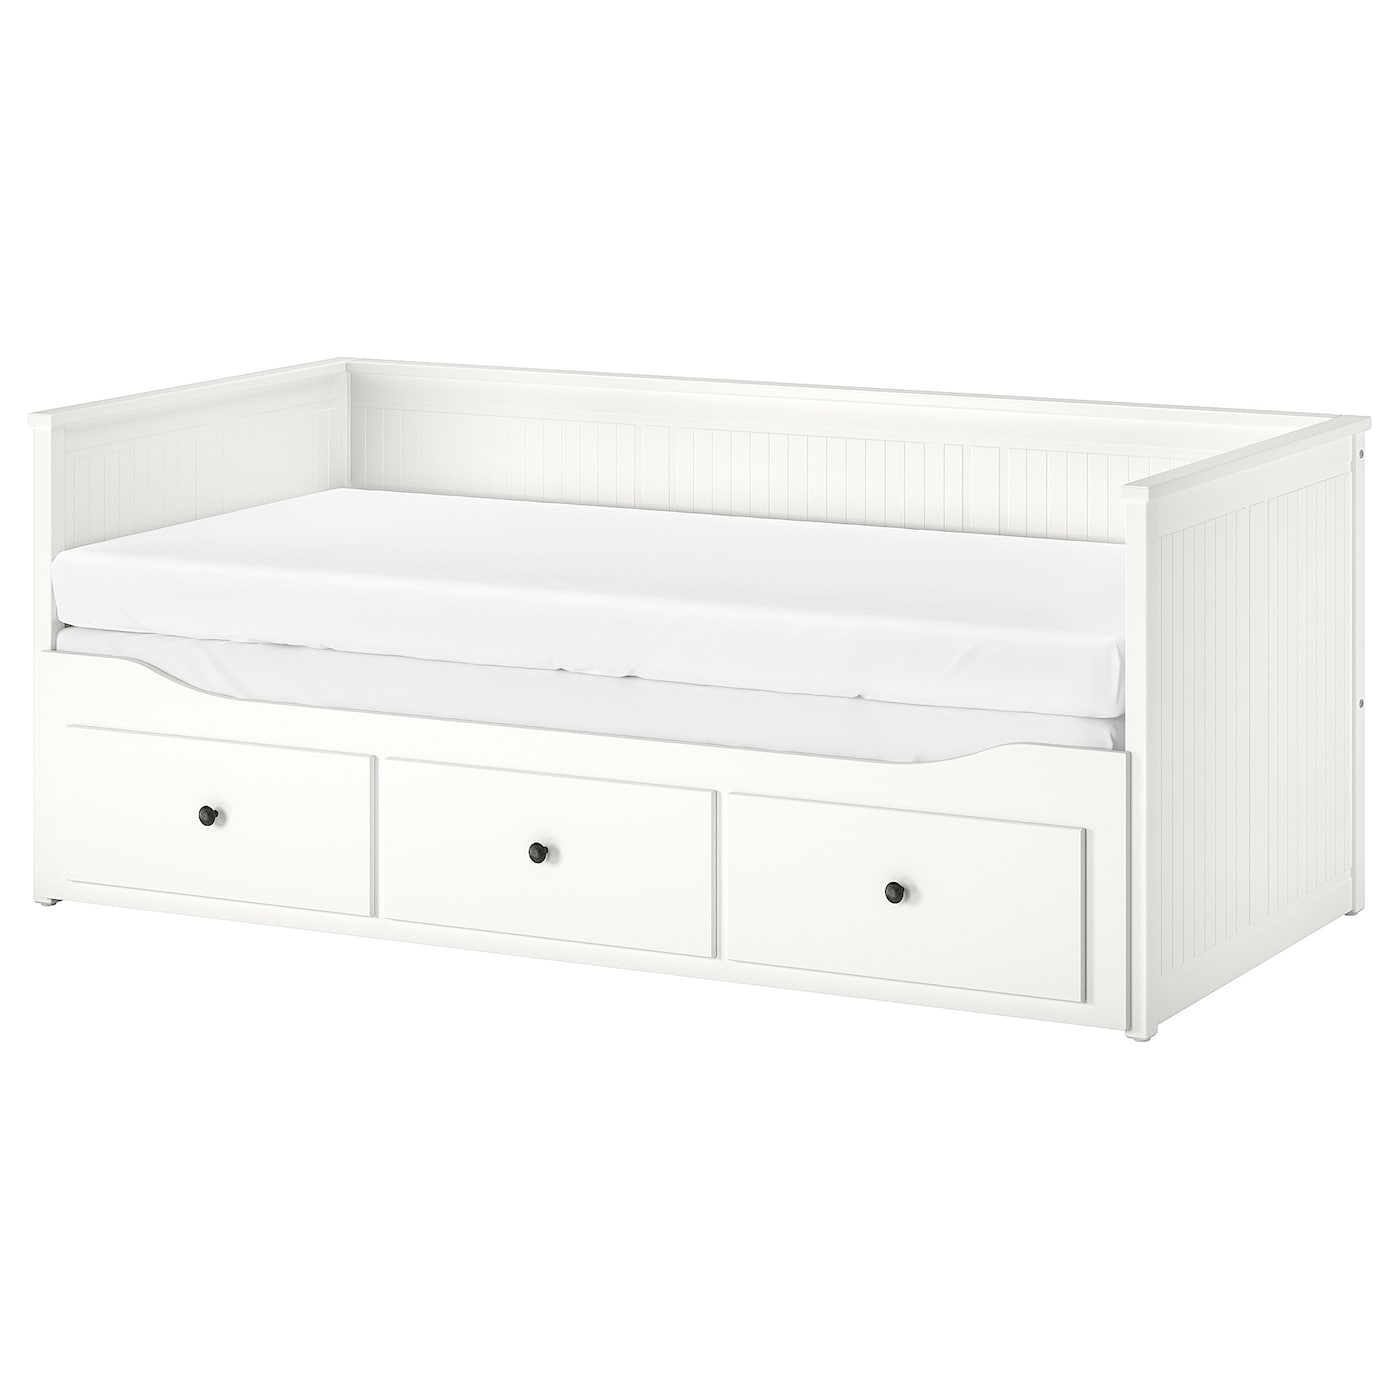 Ikea Hemnes Letto.Hemnes Day Bed W 3 Drawers 2 Mattresses White Malfors Firm